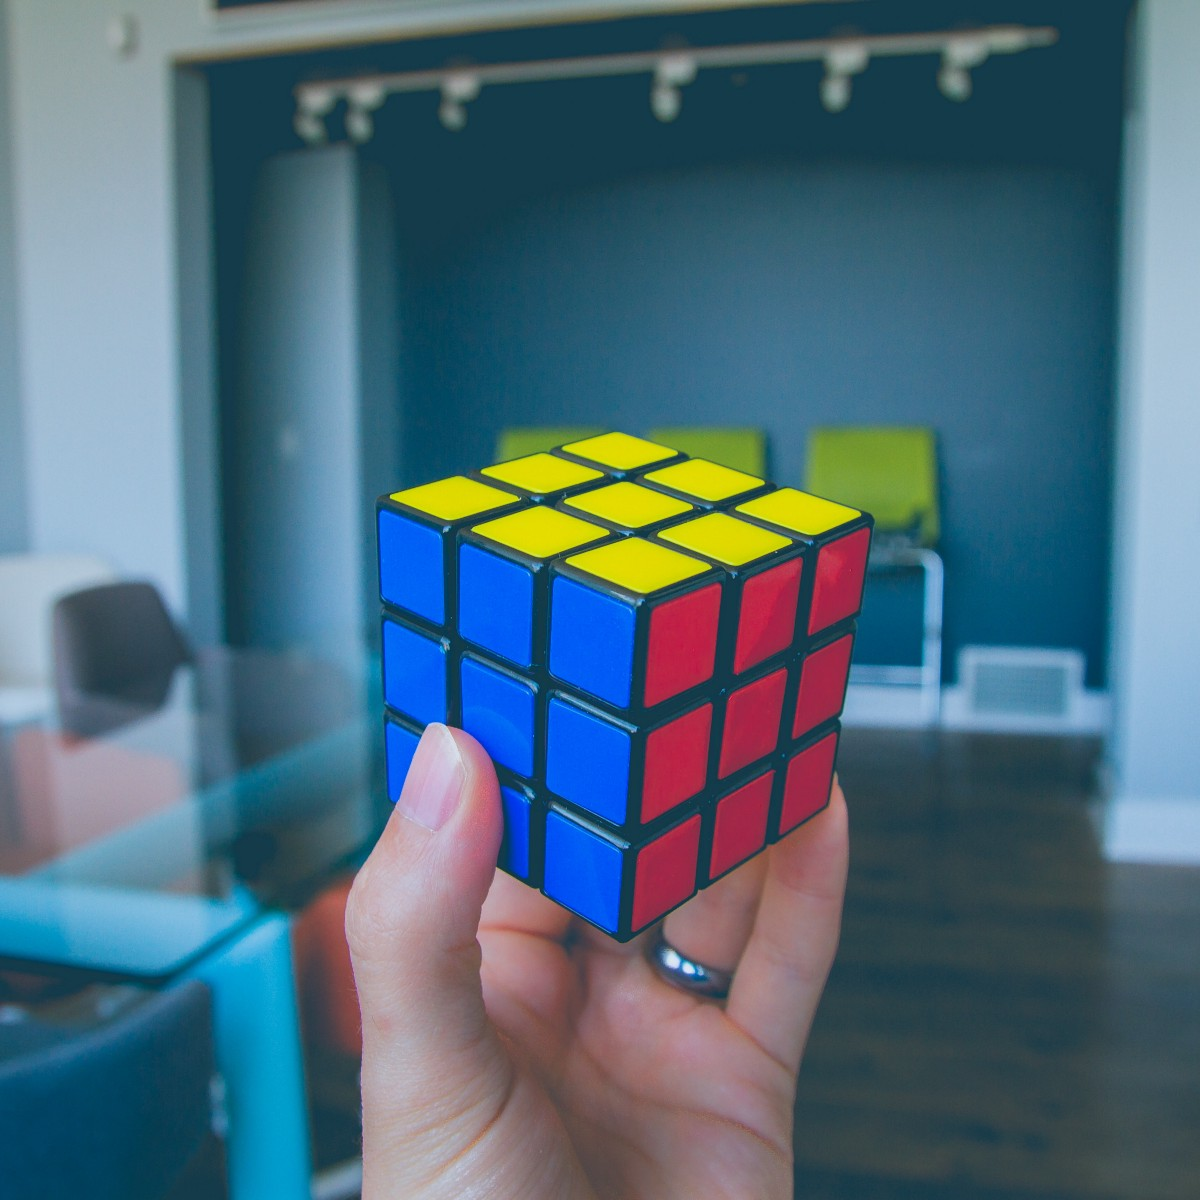 World/'s Smallest Rubiks Cube Twist and turn to solve the puzzle by getting all